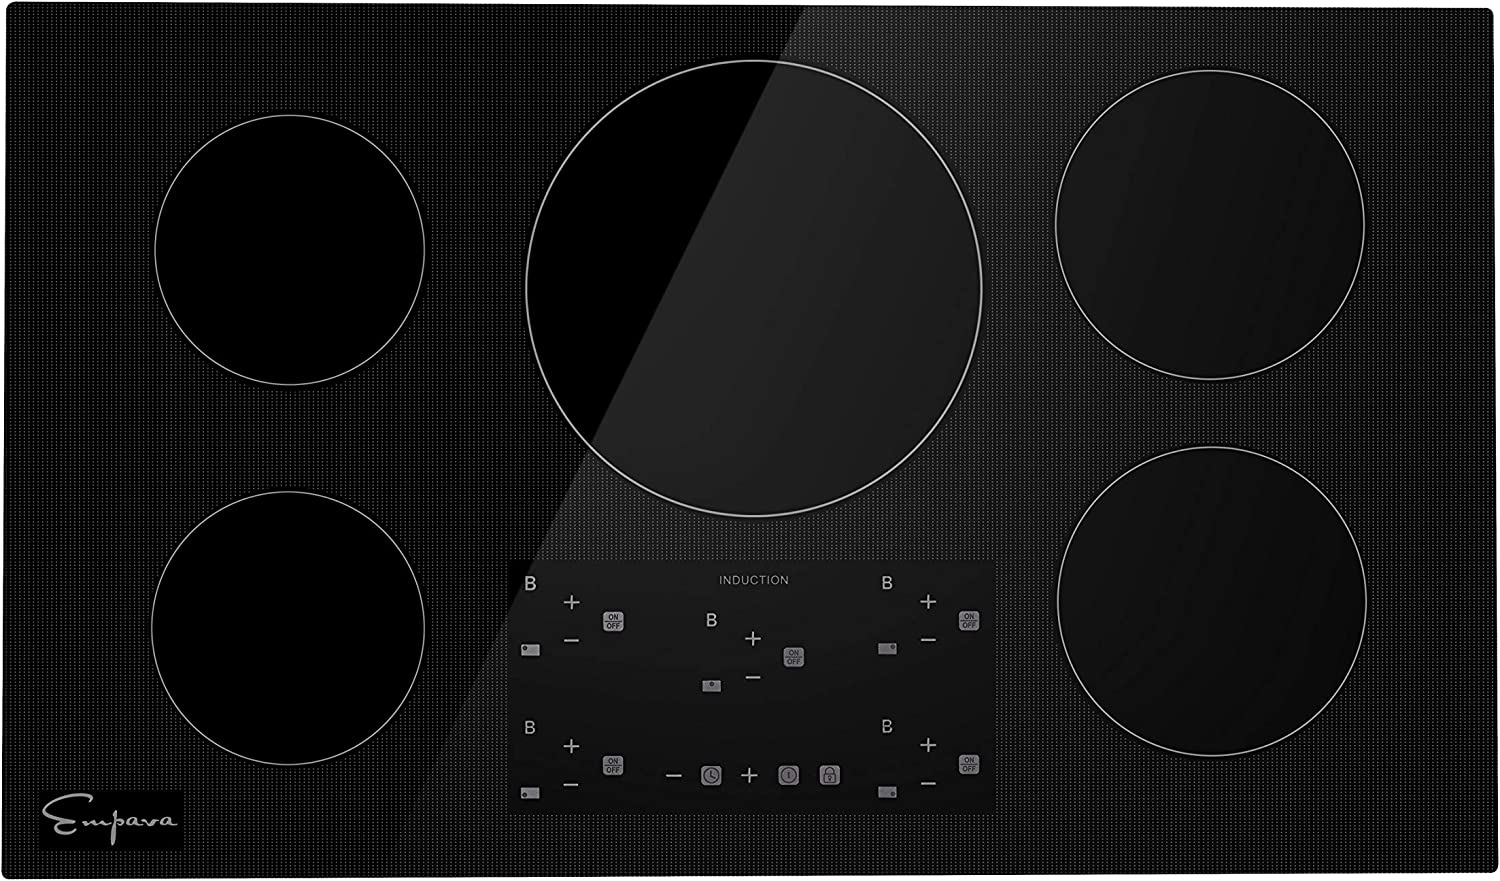 "Empava 36"" Electric Stove Induction Cooktop with 5 Power Boost Burners Smooth Surface Vitro Ceramic Glass in Black, 36 Inch"